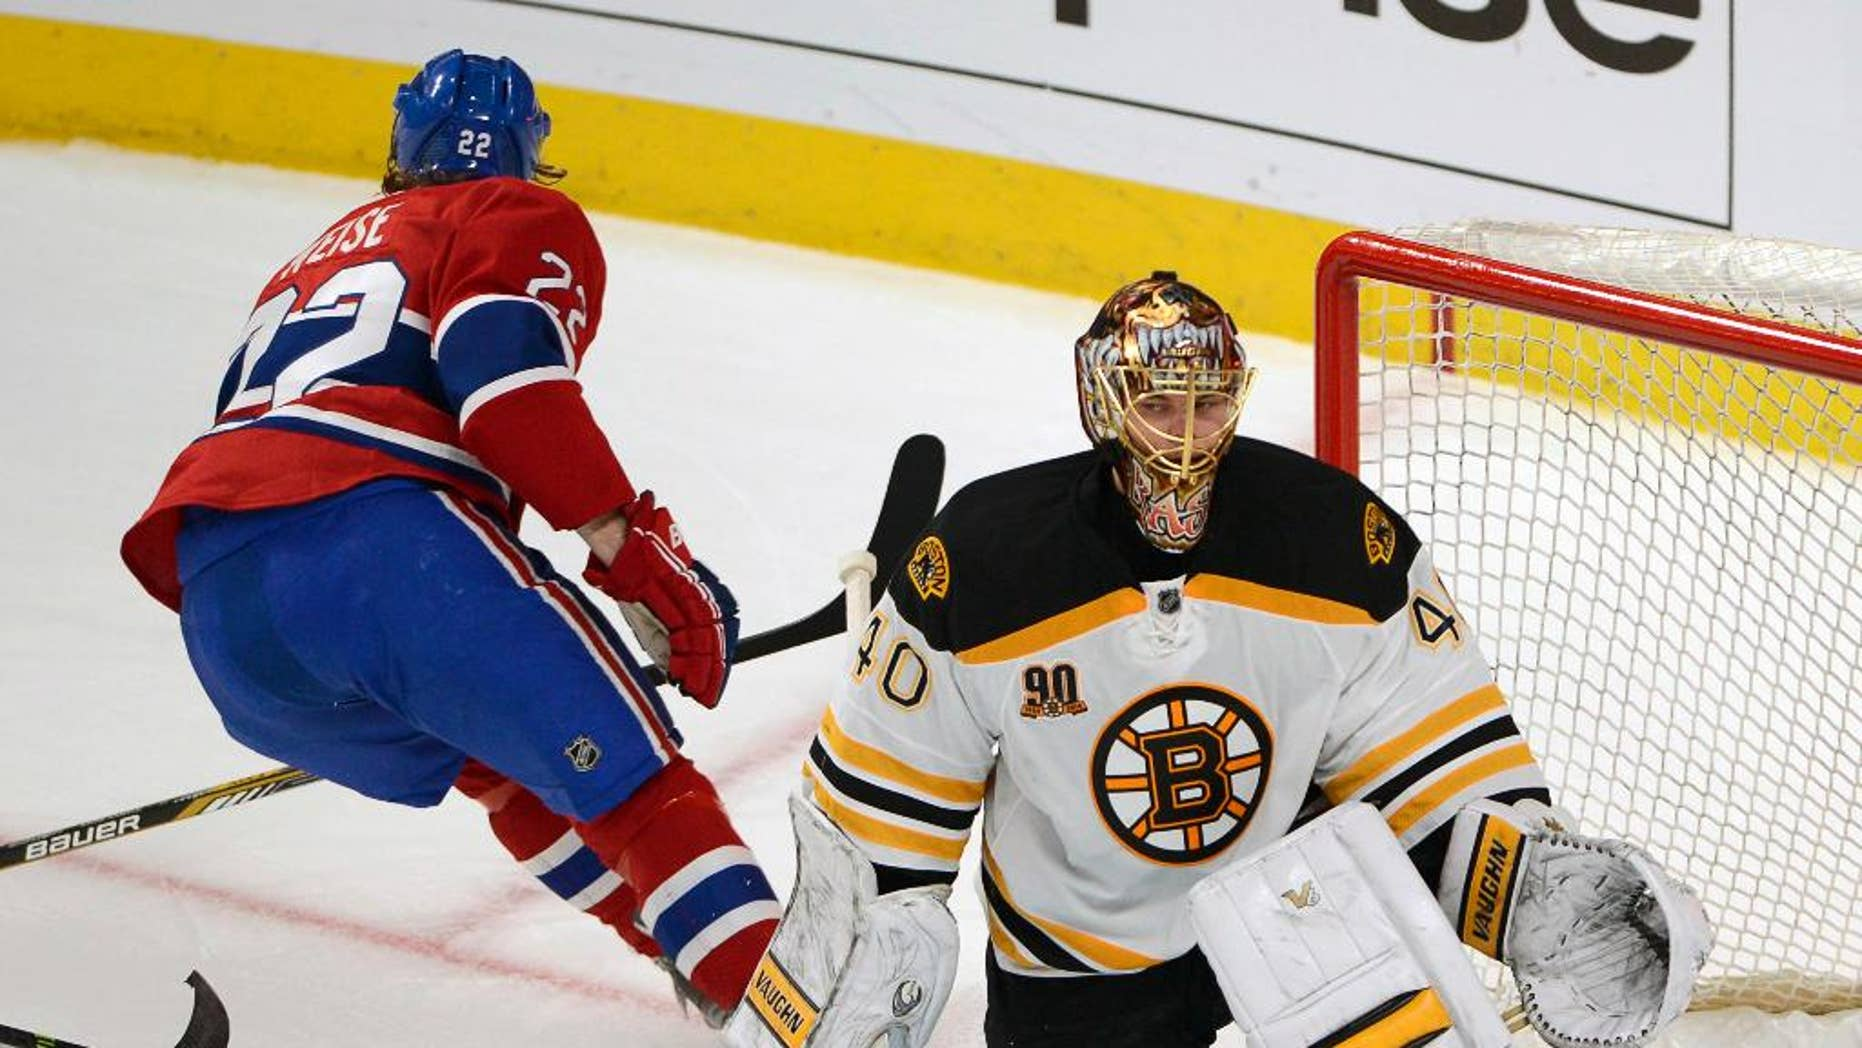 Montreal Canadiens right wing Dale Weise (22) scores the third goal against Boston Bruins goalie Tuukka Rask (40) during second period in Game 3 of an NHL hockey Stanley Cup playoff series, Tuesday, May 6, 2014, in Montreal. (AP Photo/The Canadian Press, Ryan Remiorz)